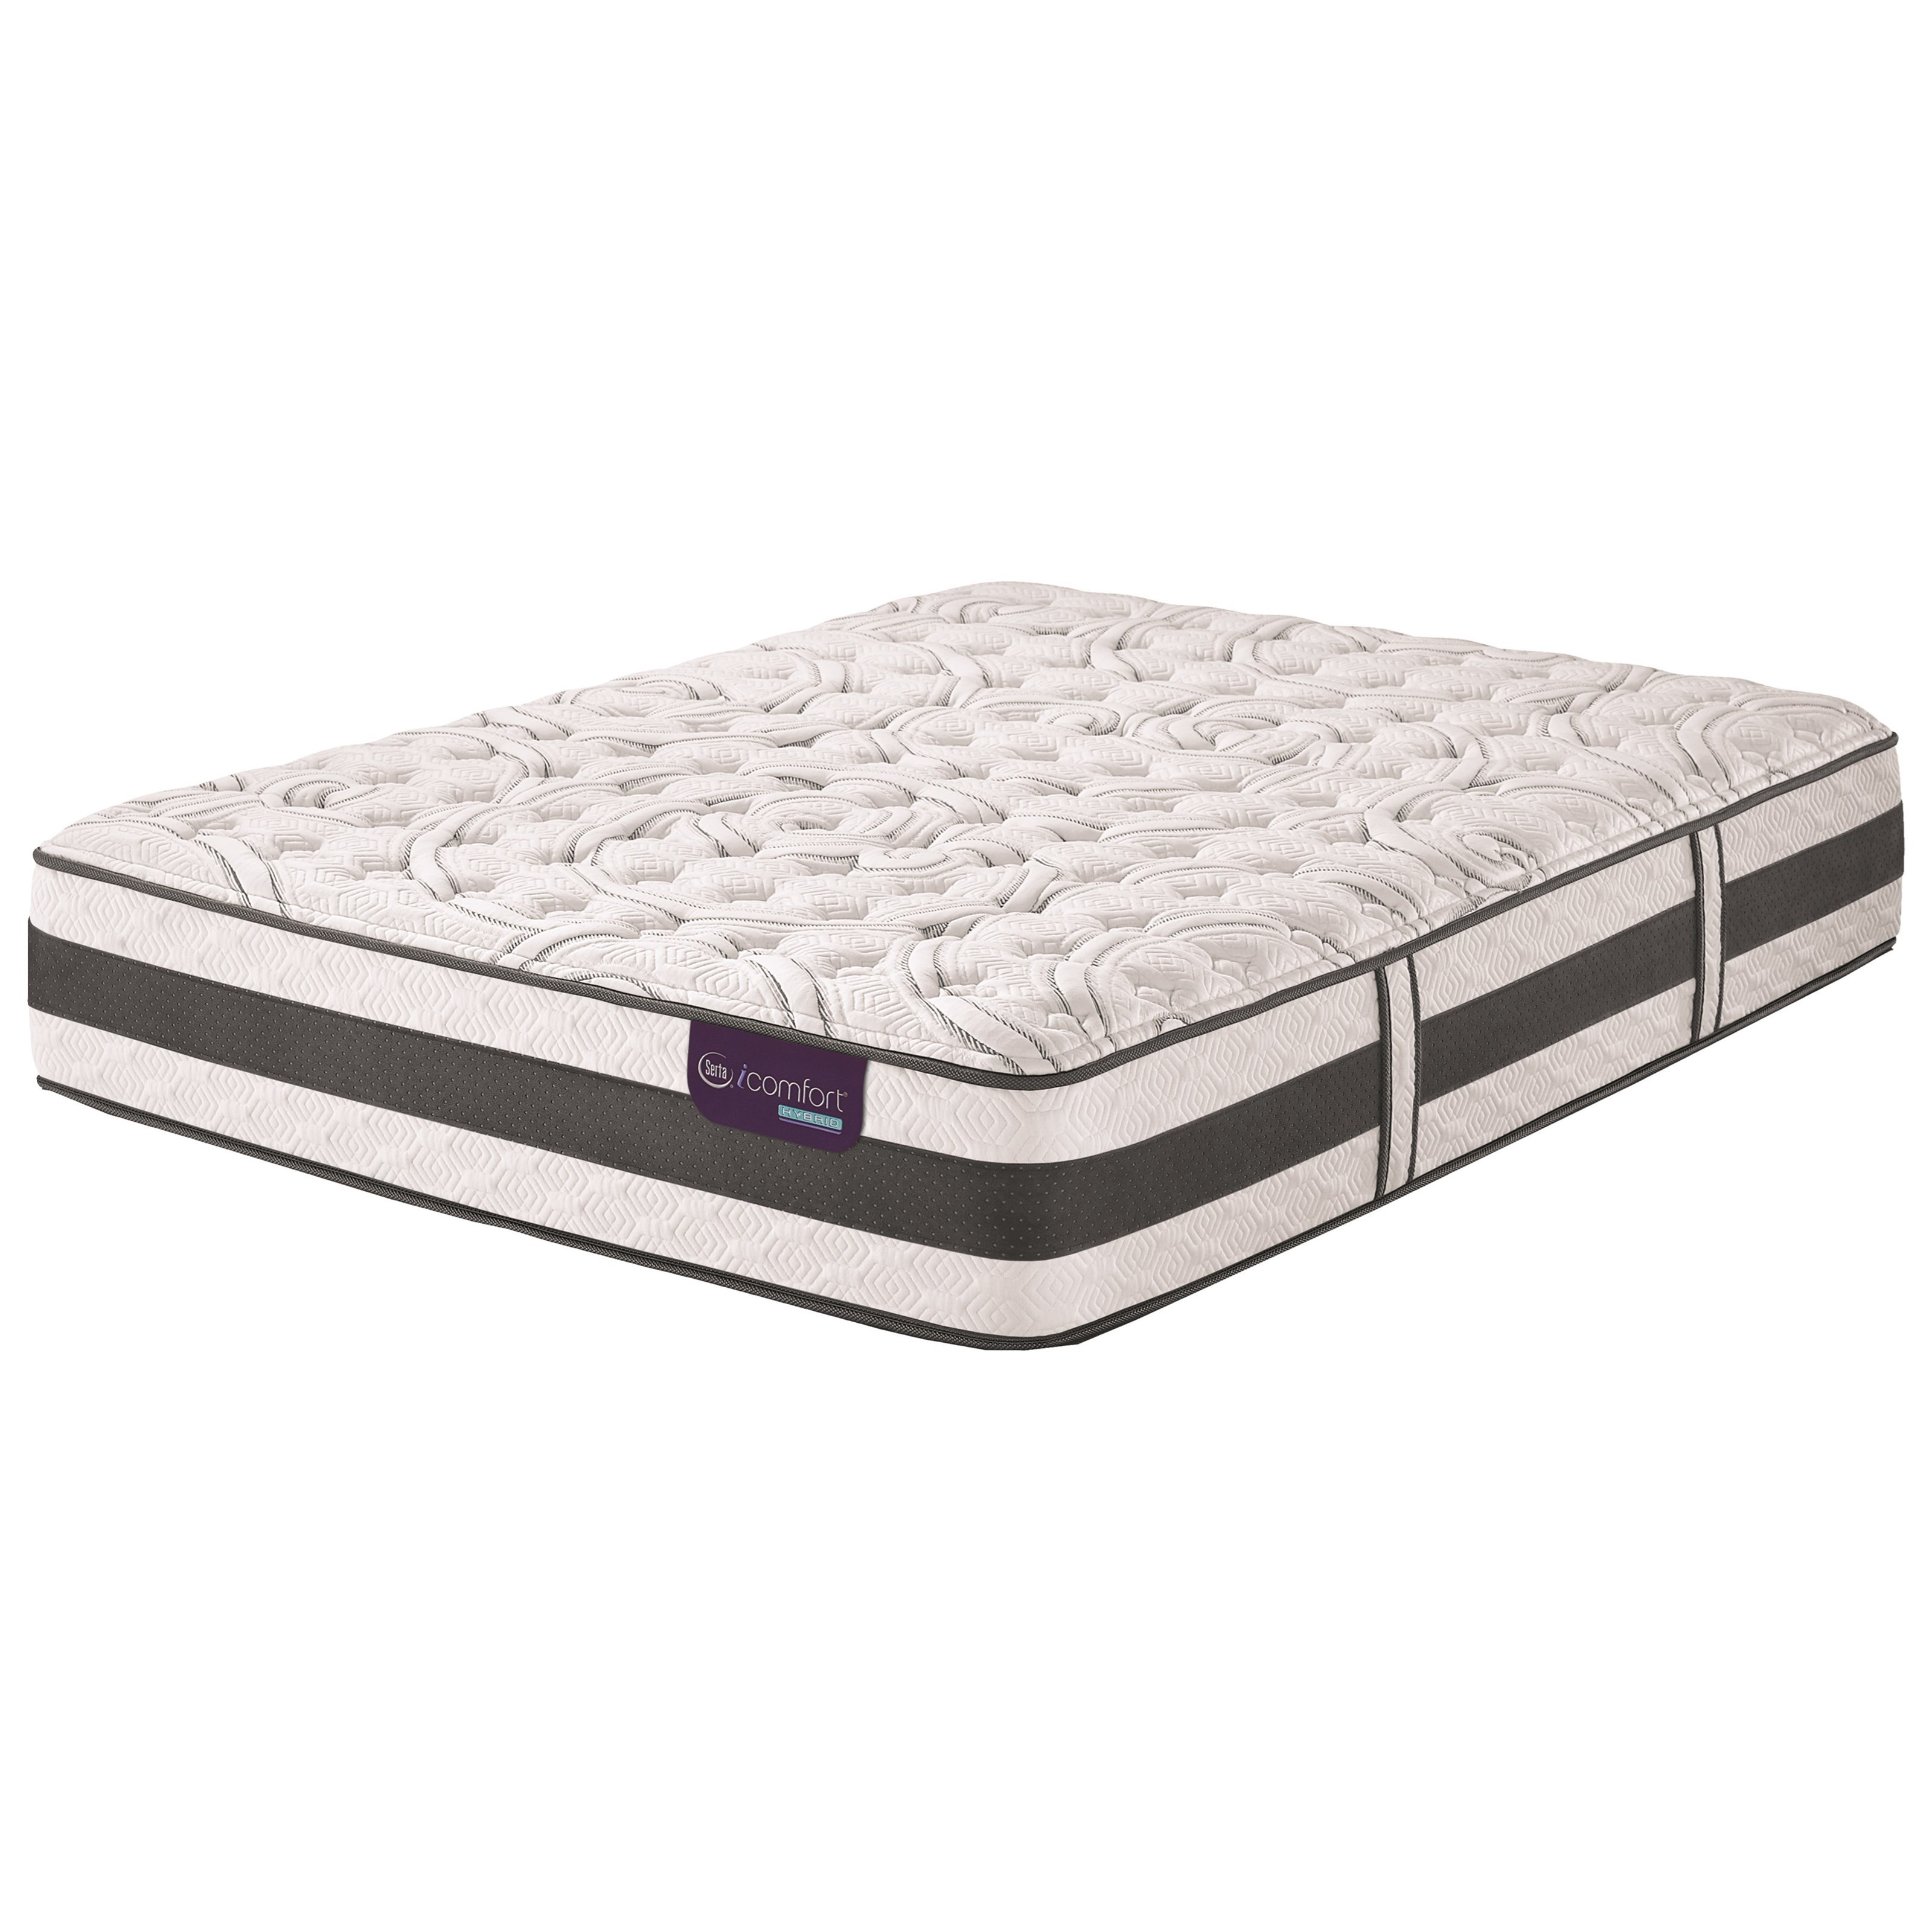 Serta iComfort Hybrid Recognition Queen Extra Firm Hybrid ...